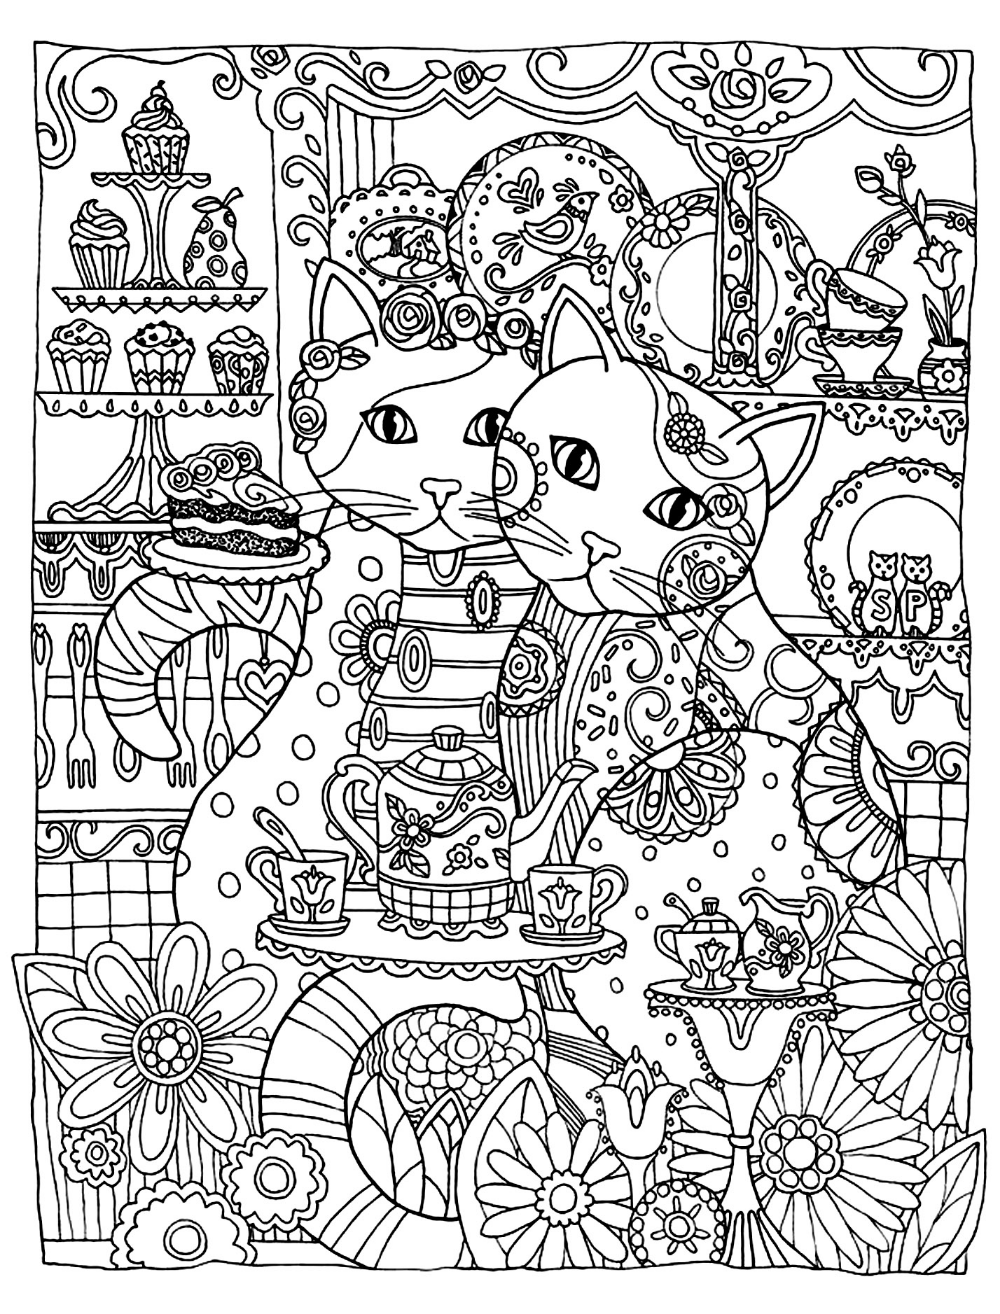 Pin On Colouring Competition